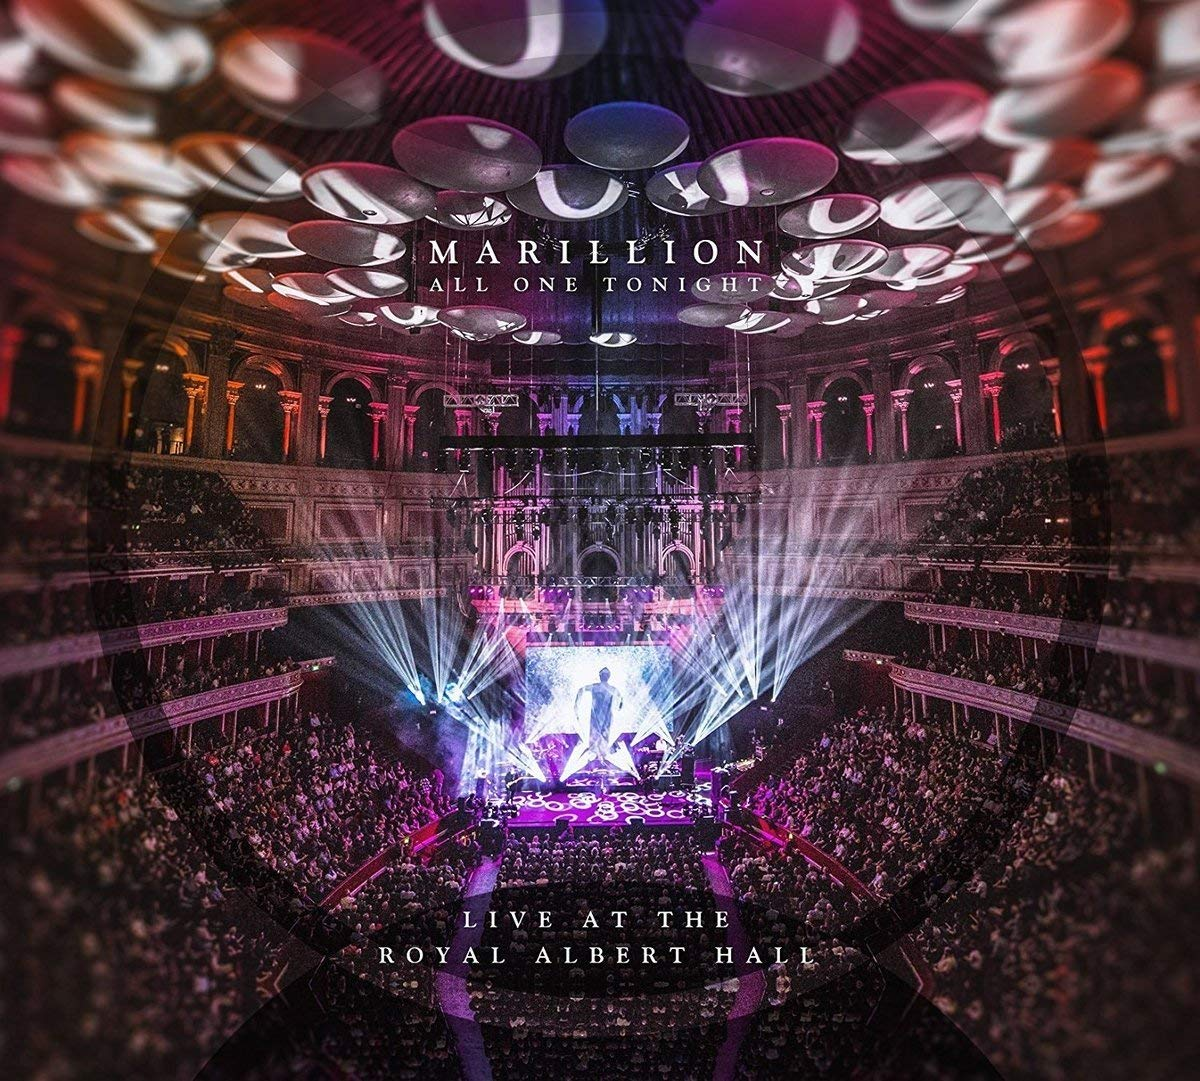 Marillion Marillion. All One Tonight. Live At The Royal Albert Hall (4 LP) marillion marillion marillion best live 4 lp